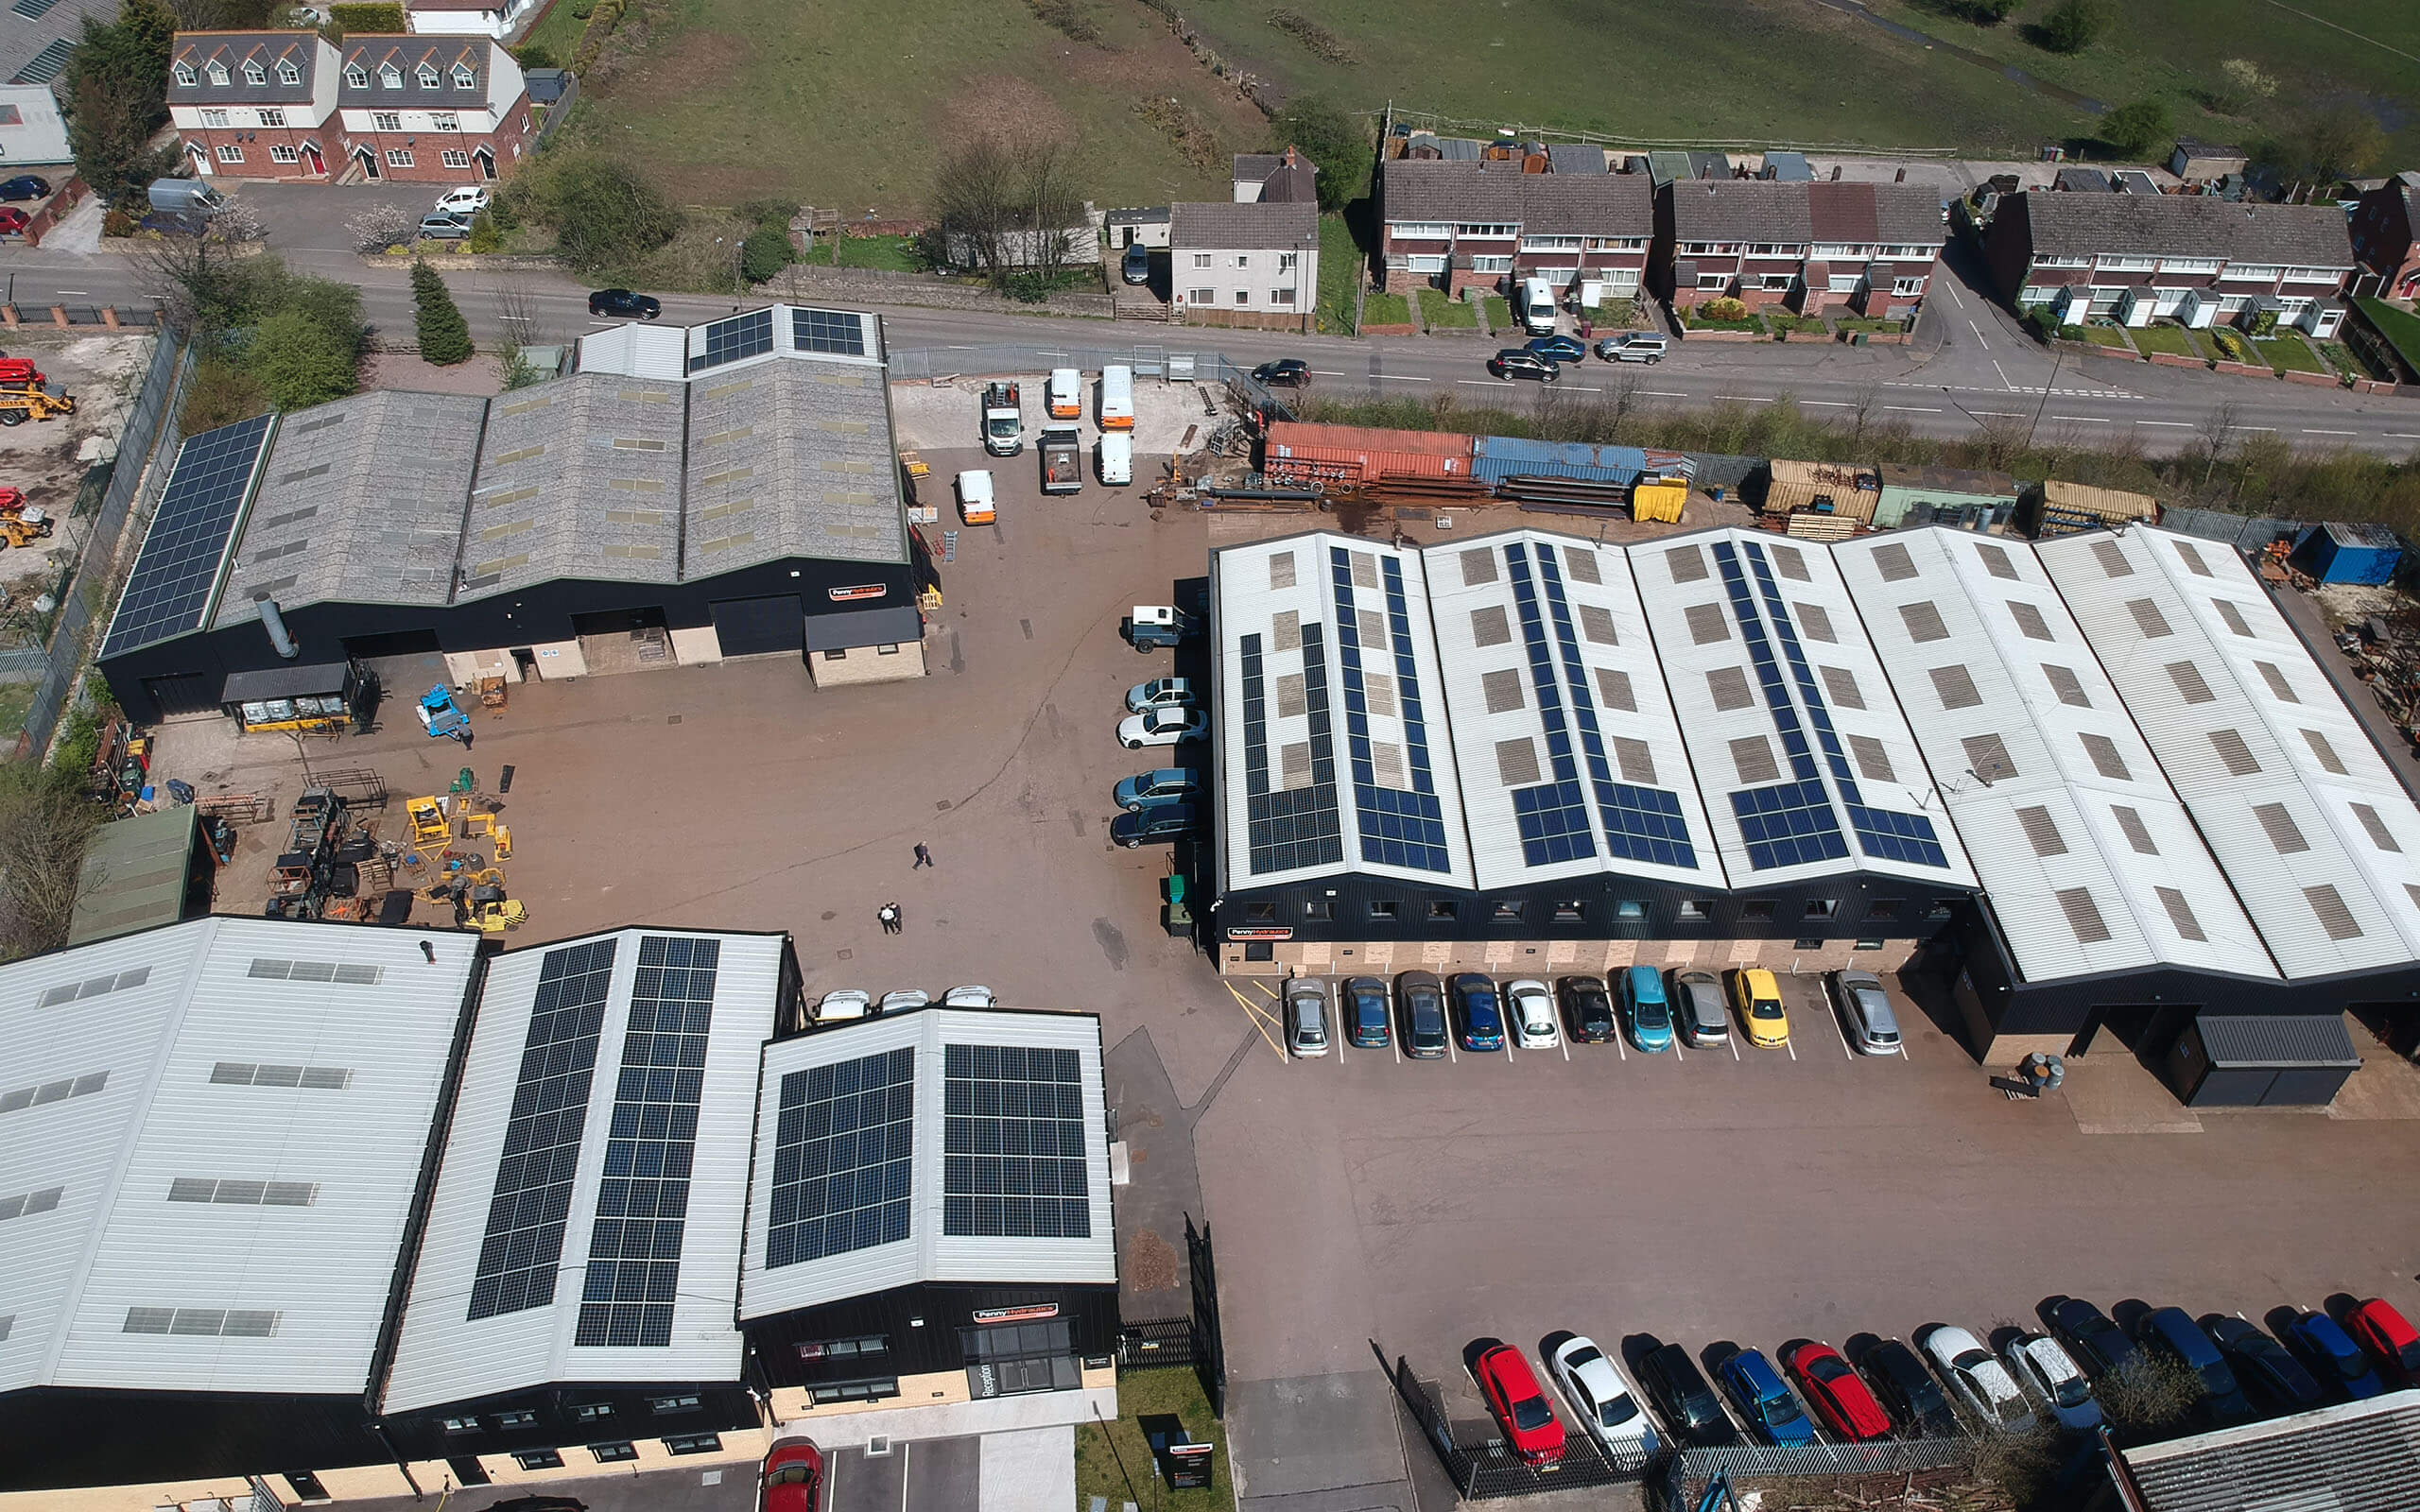 Birds eye view of Penny Hydraulics site